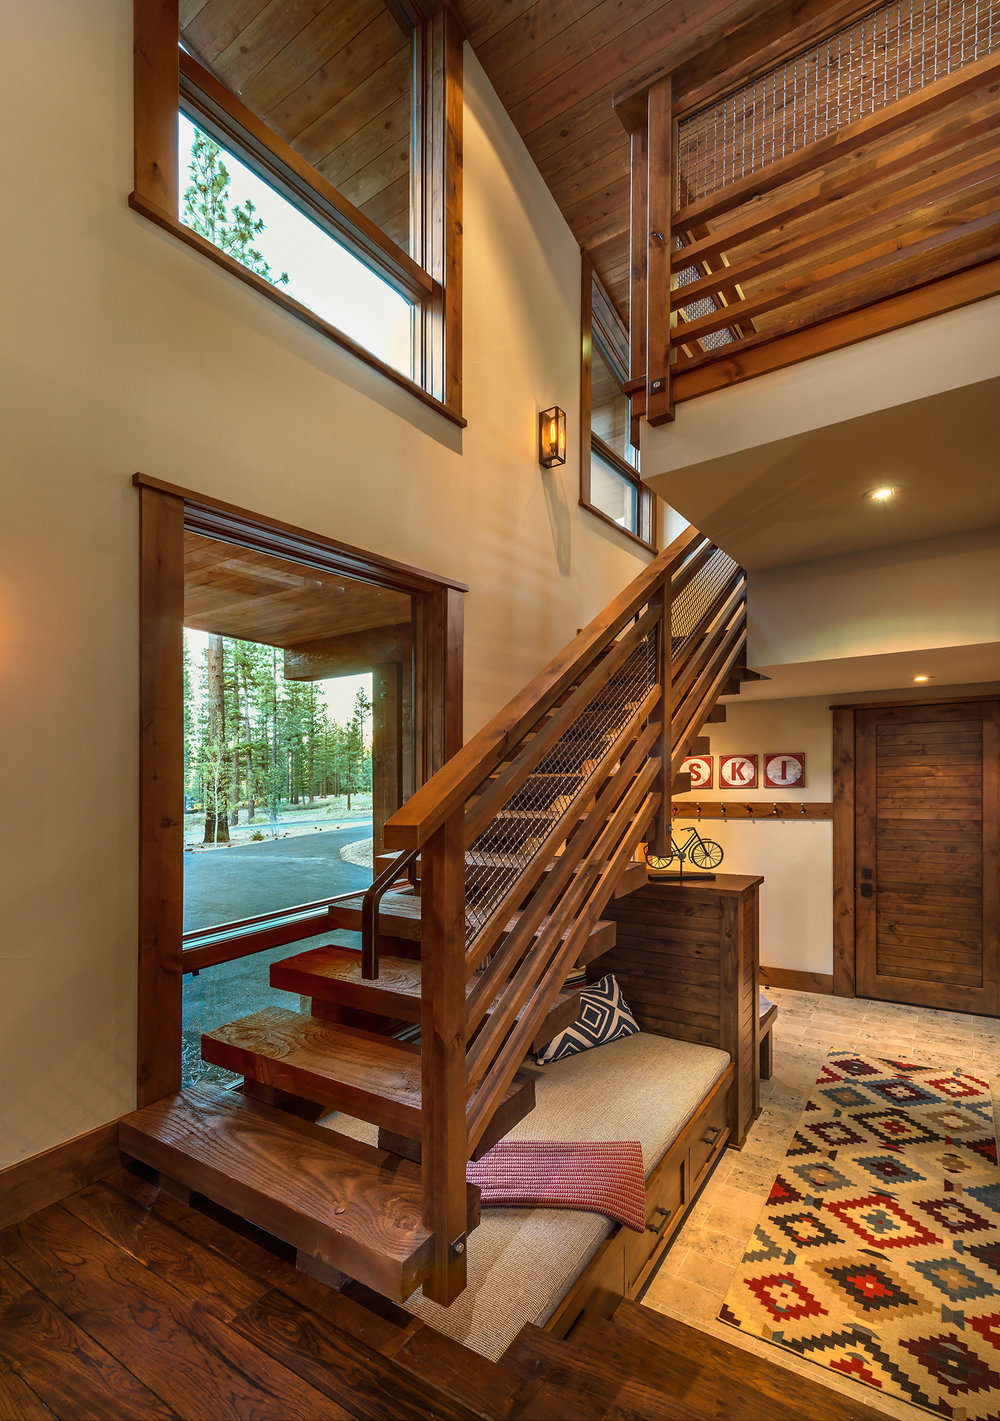 Lot 440_Staircase_Wood Railings.jpg